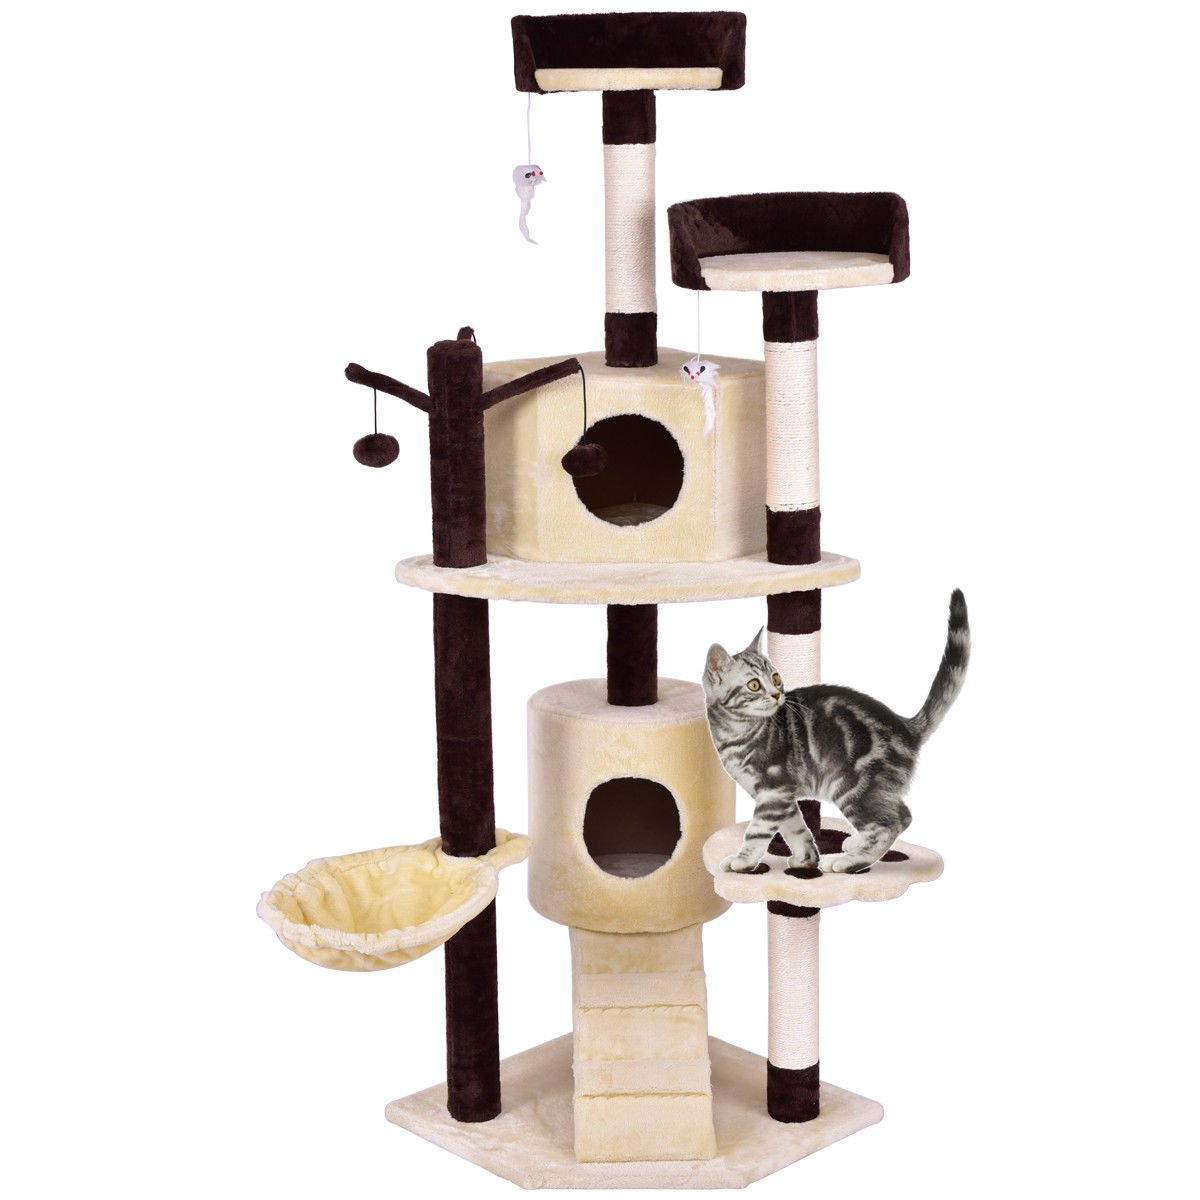 patcharaporn 63'' Cat Tree Pet Play House Tower Condo Bed Scratching Post w Hanging Toy Ladder